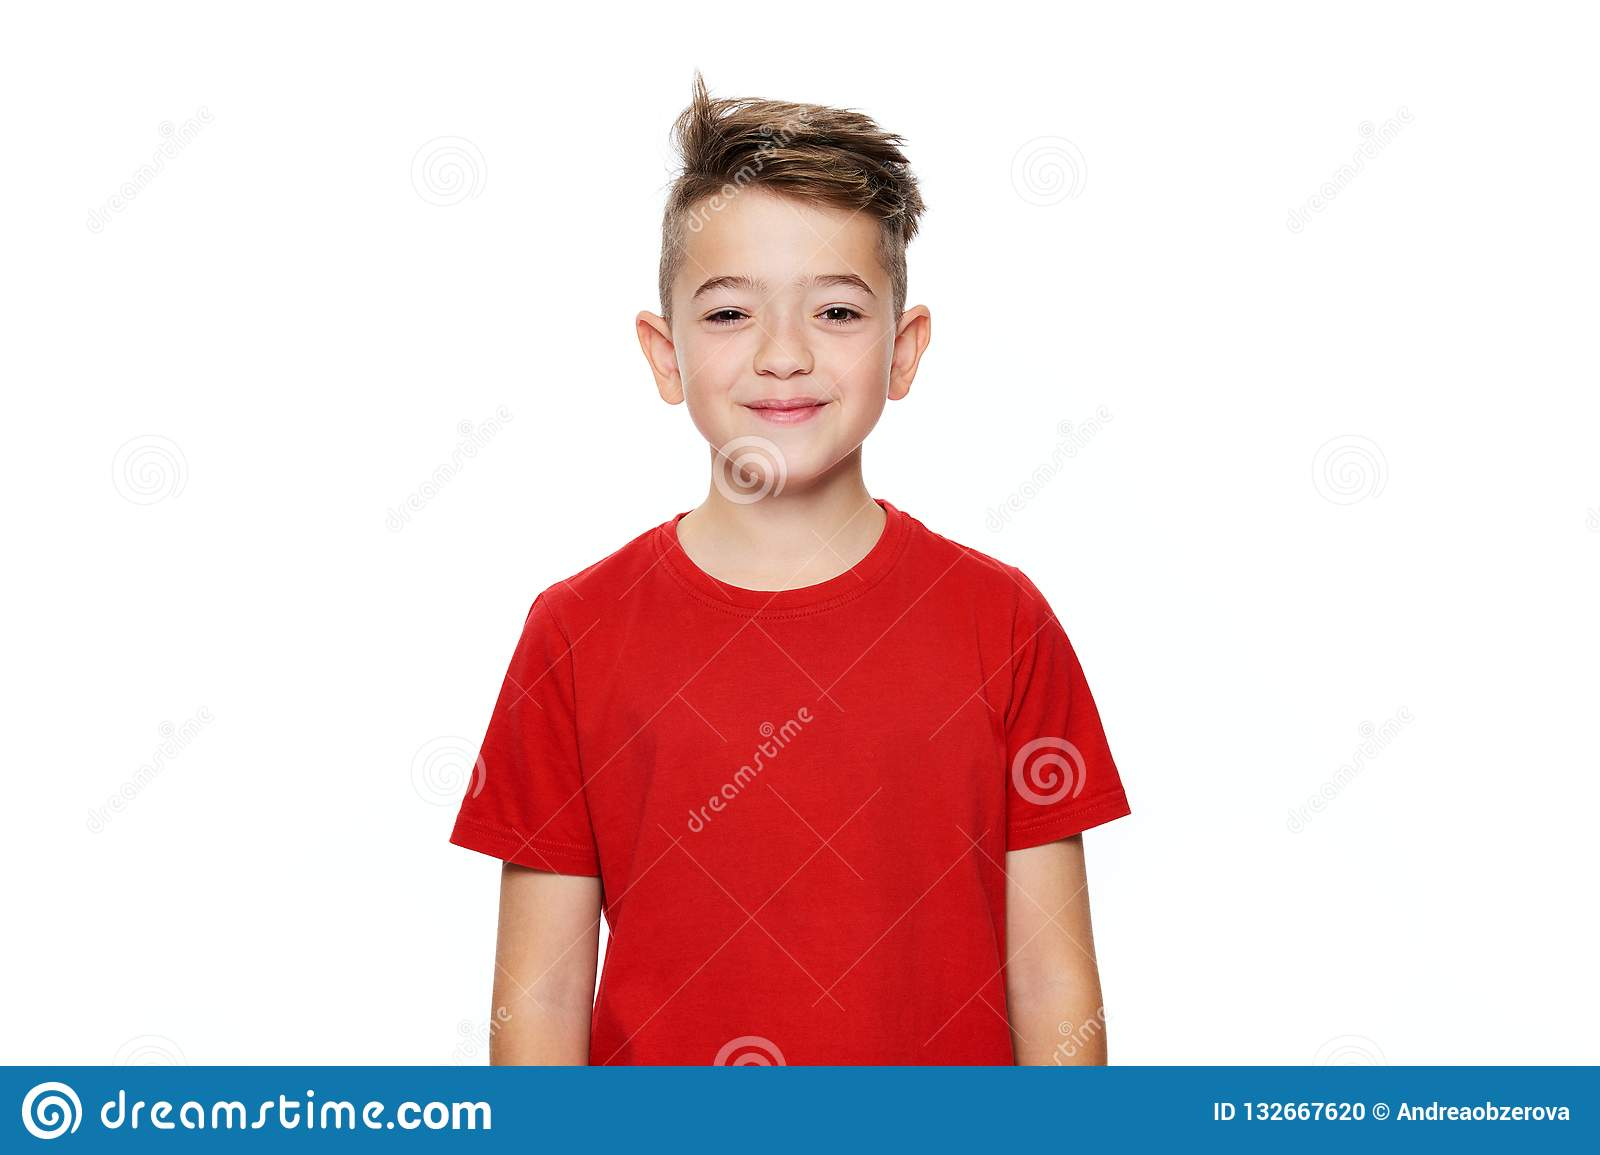 Adorable young teenage boy waist up studio portrait isolated over white background. Handsome boy looking at camera with smile.